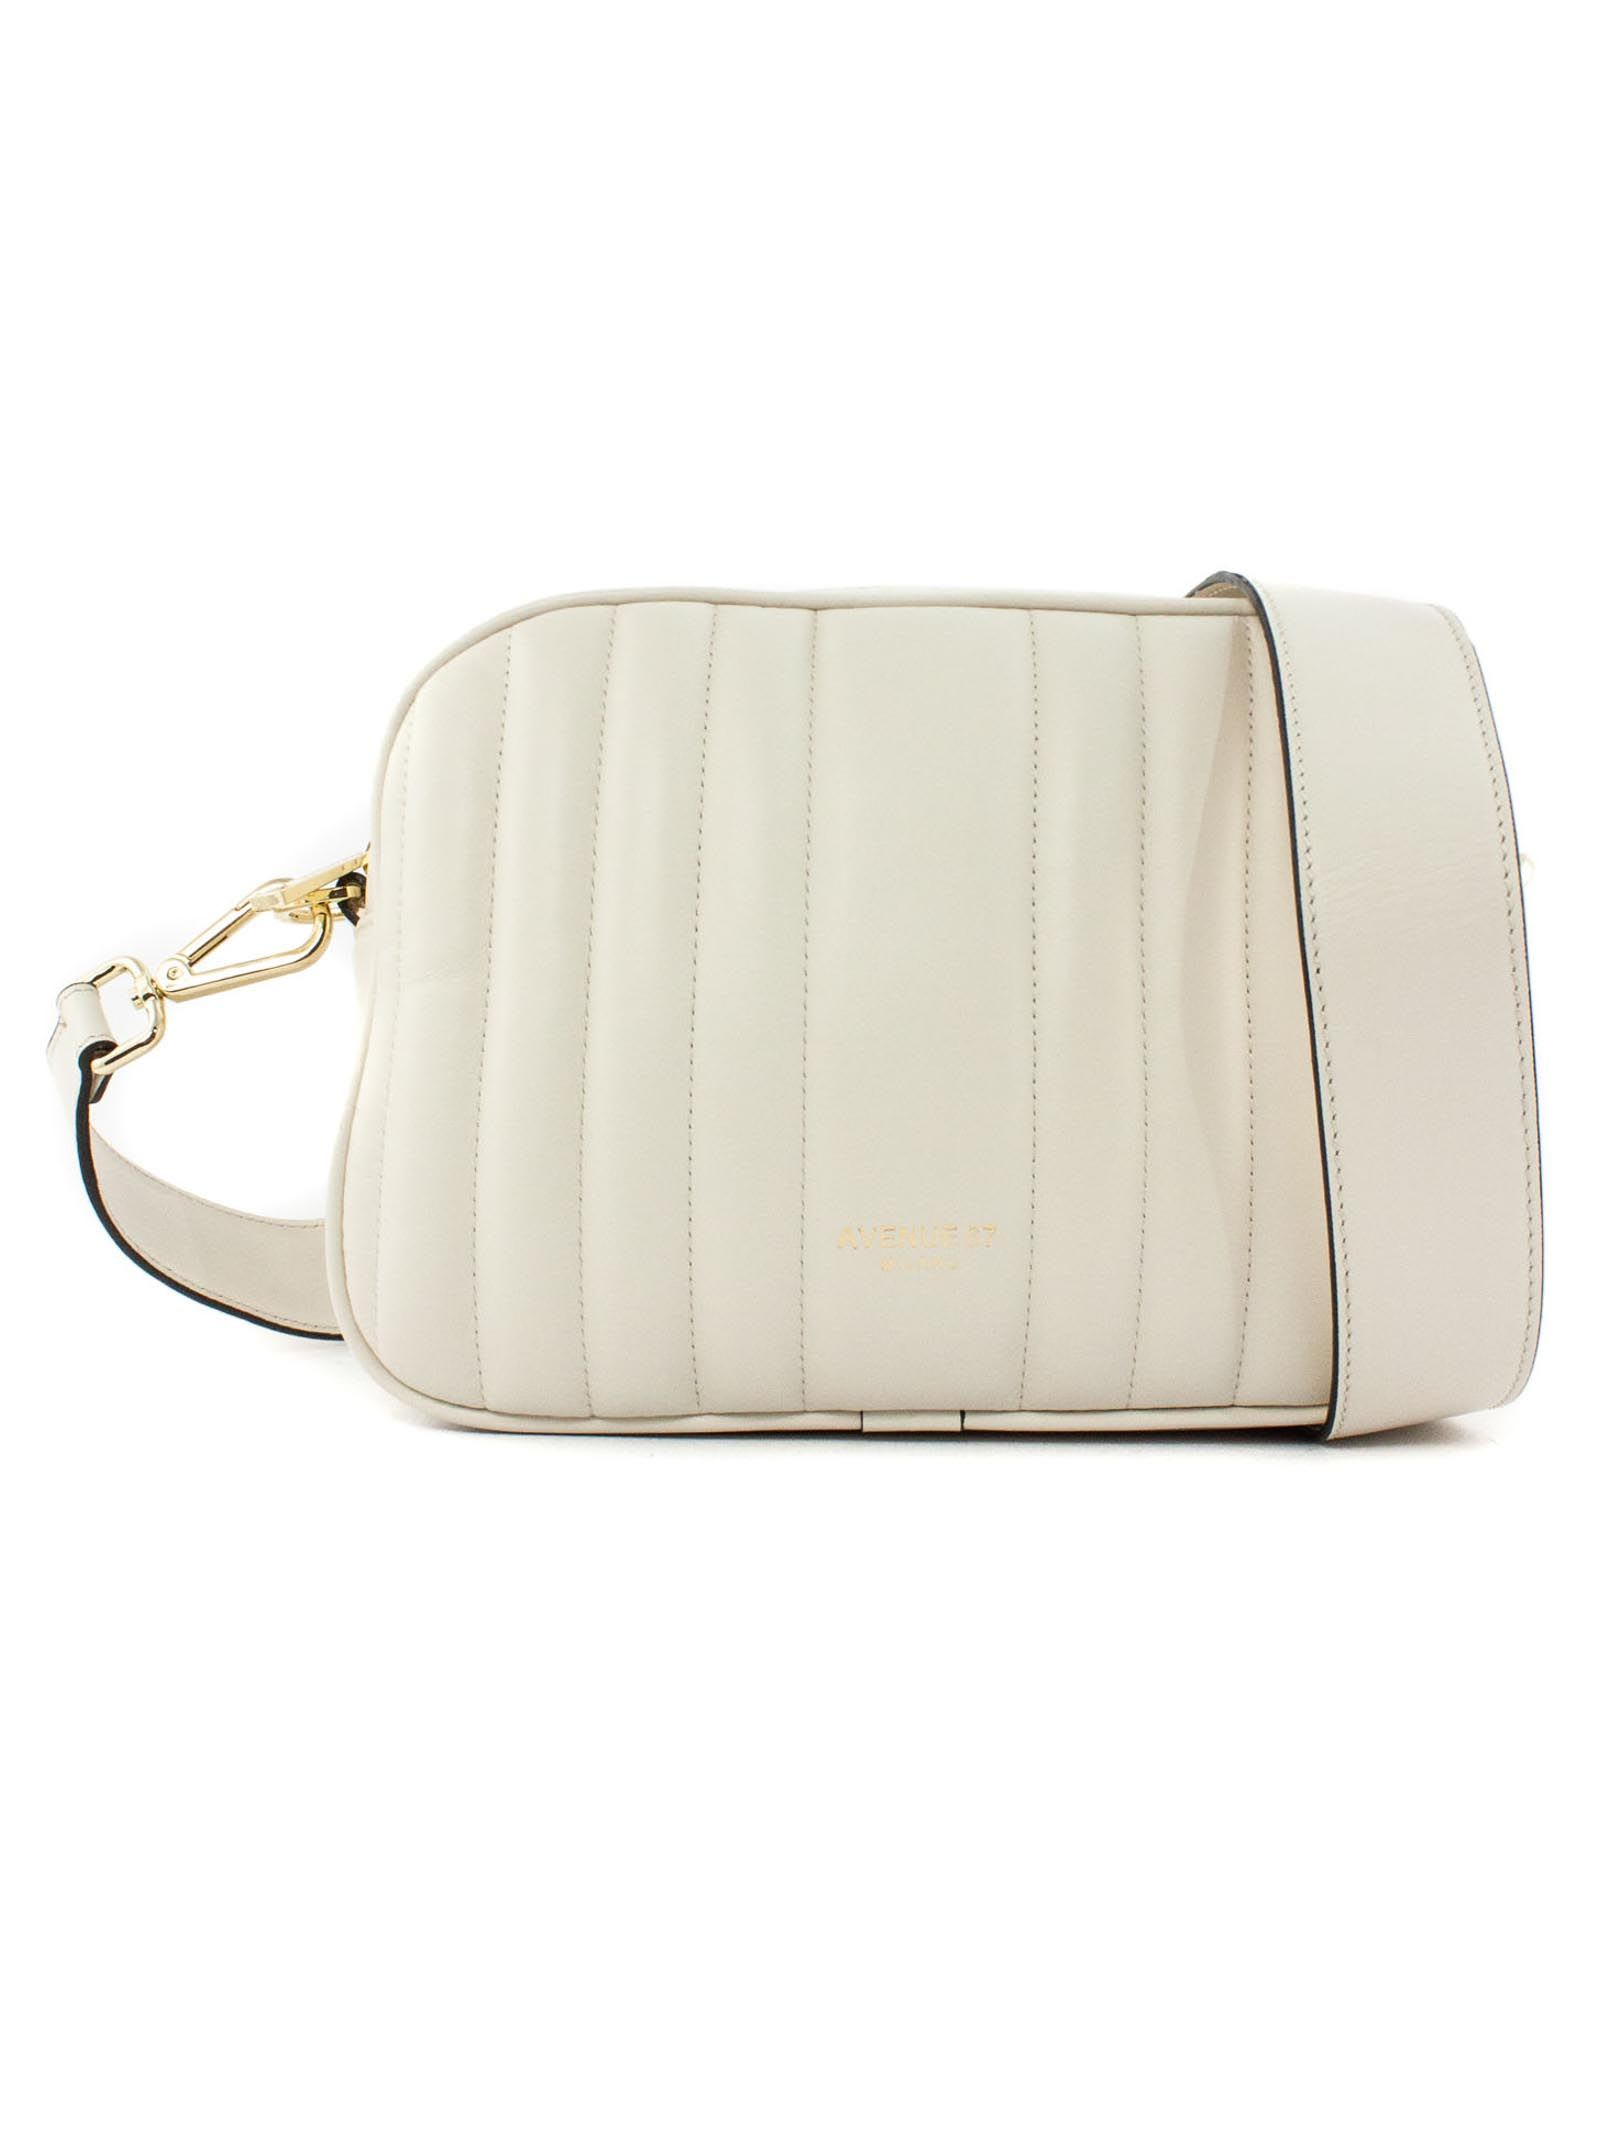 Cloe Small Bag In White Leather